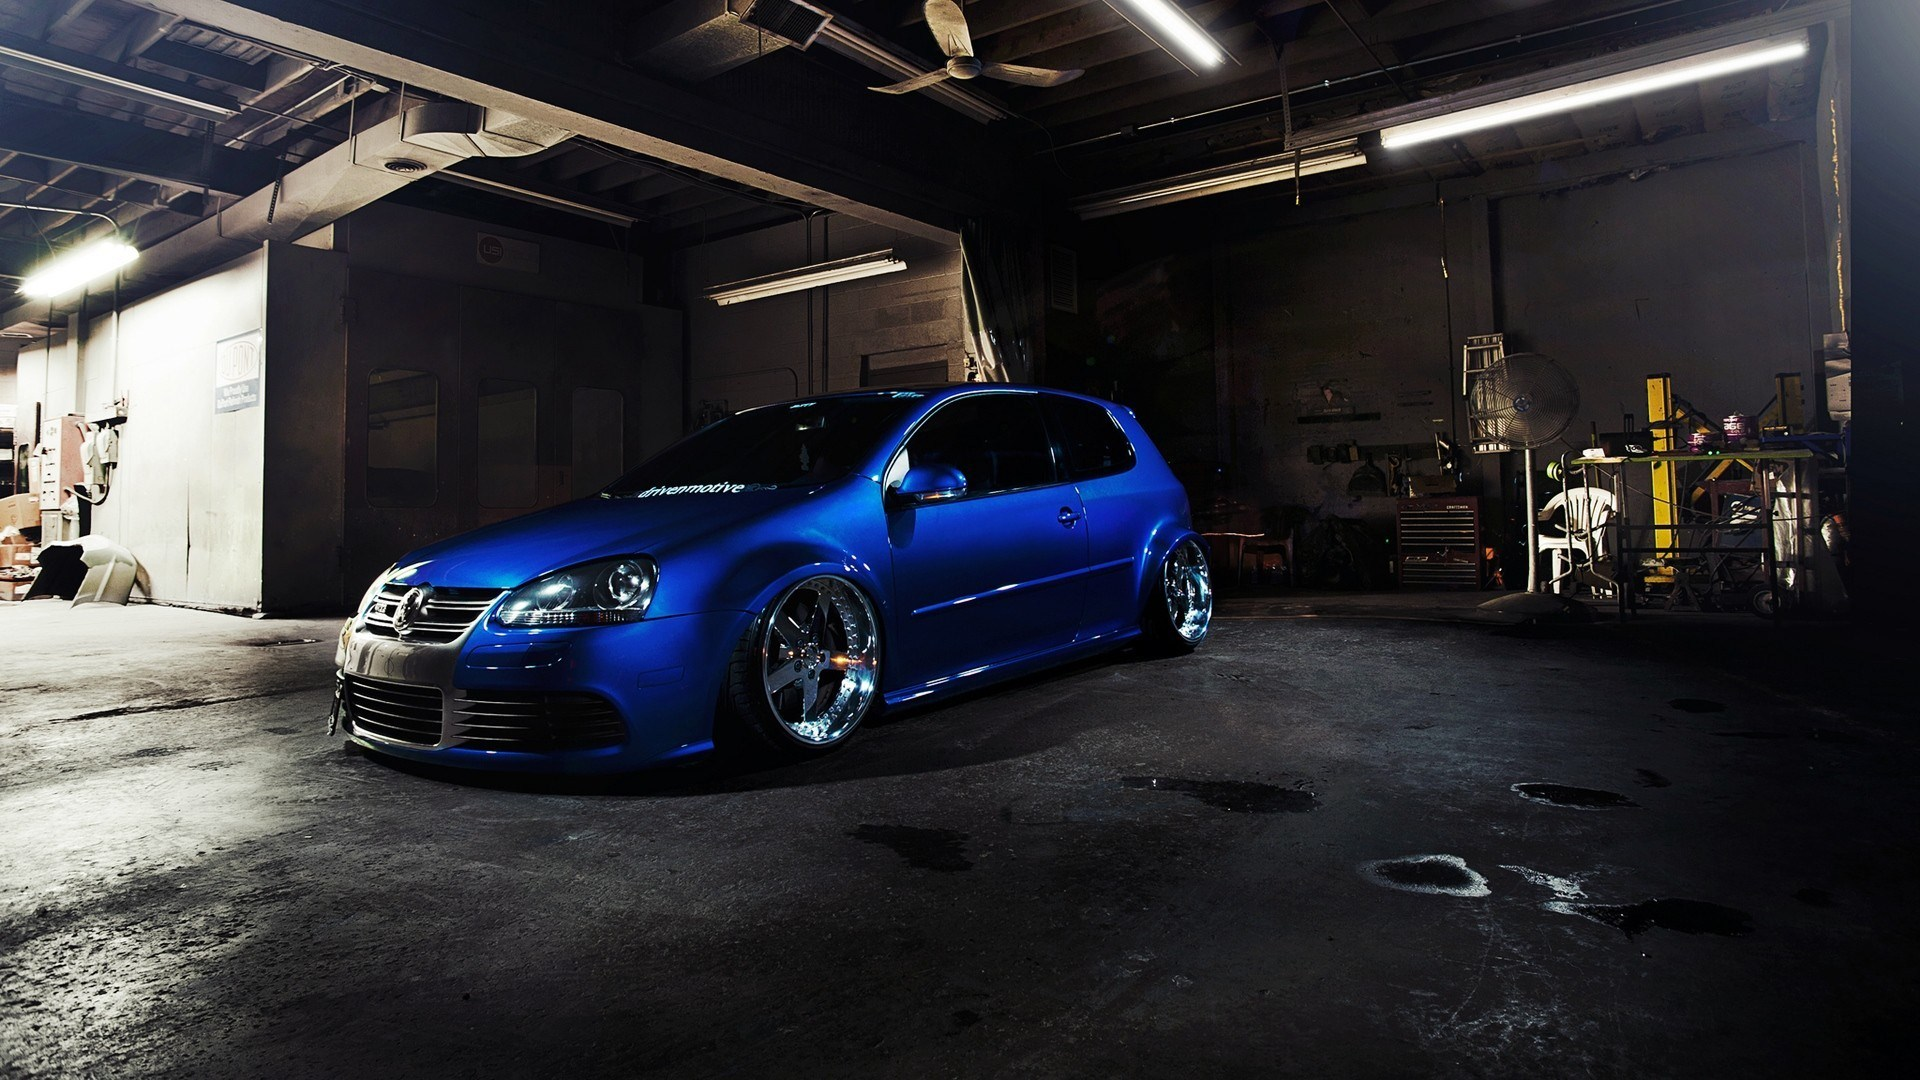 Volkswagen Golf R32 Photo pictures in high definition or widescreen 1920x1080